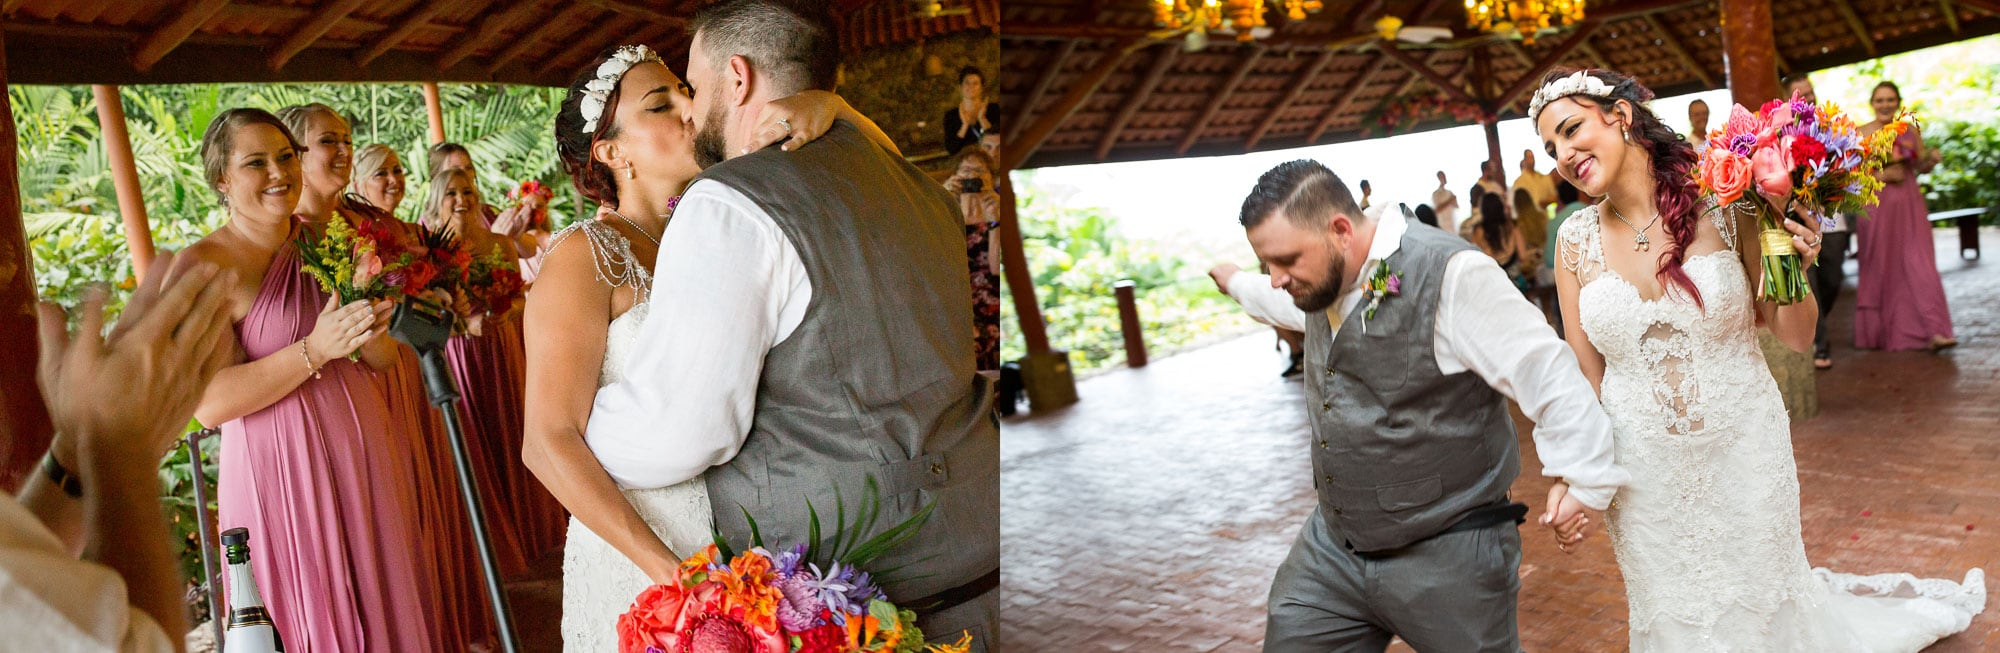 The kiss and the groom doing his happy dance!